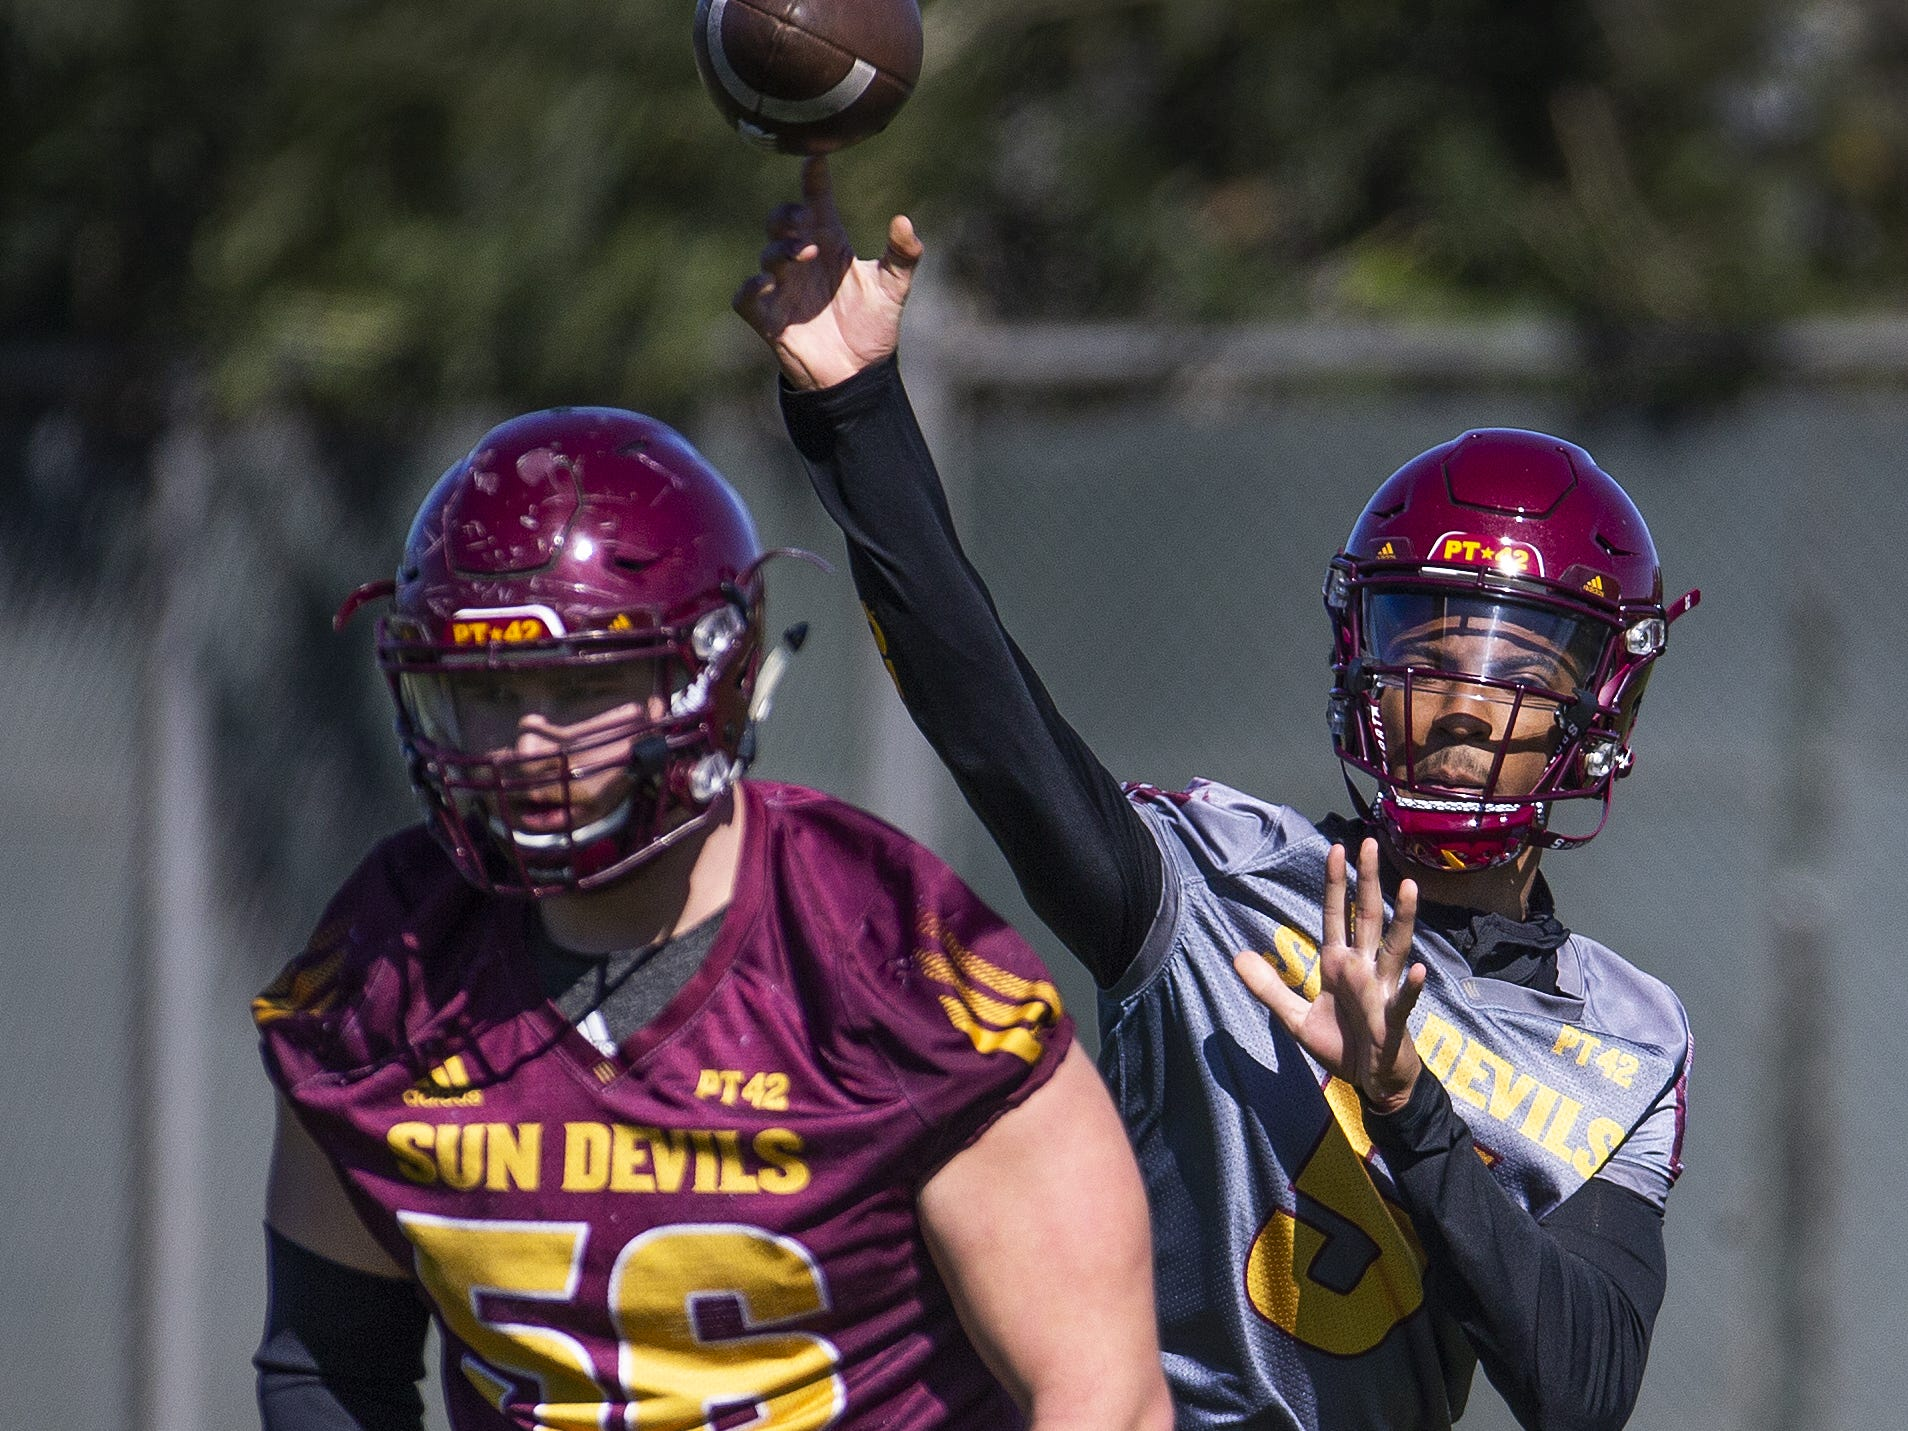 The Arizona State University football team practiced in Tempe, Tuesday, February 26, 2019.   Quarterback Jayden Daniels fires a pass as lineman Alex Losoya prepares to block.